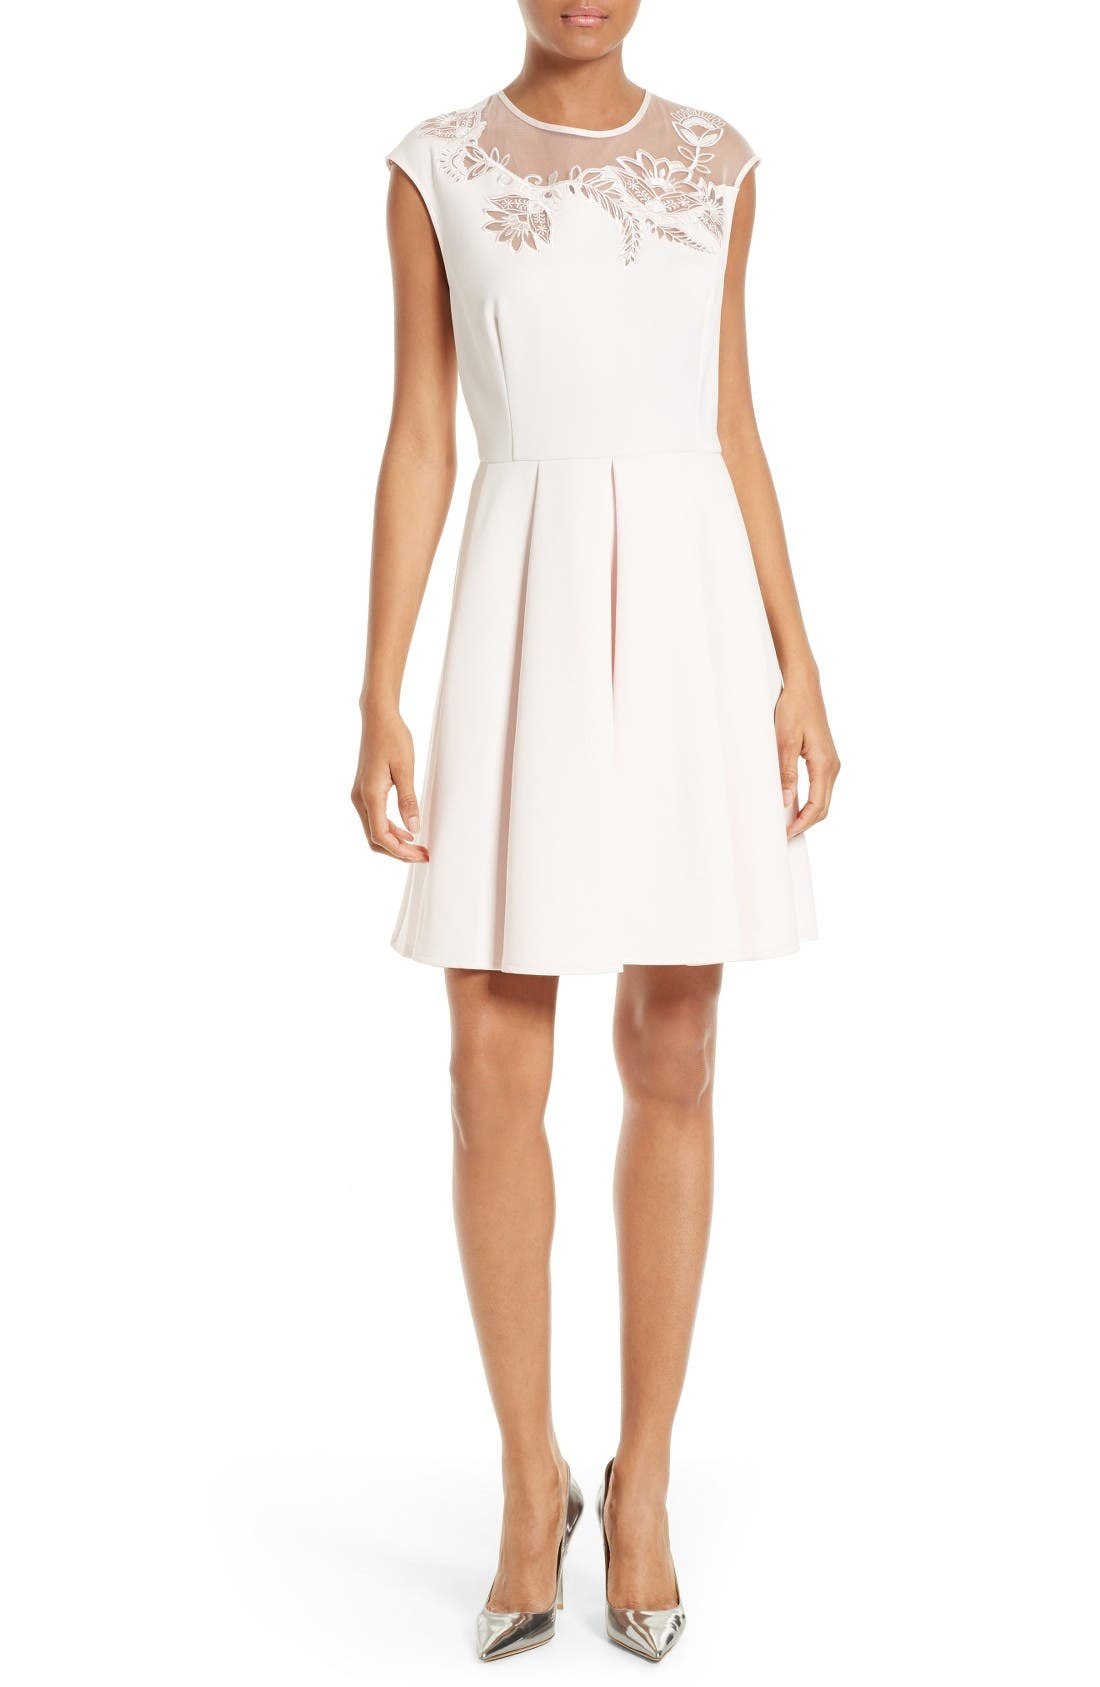 Alternate Image 1 Selected - Ted Baker London Dollii Embroidered Illusion Fit & Flare Dress